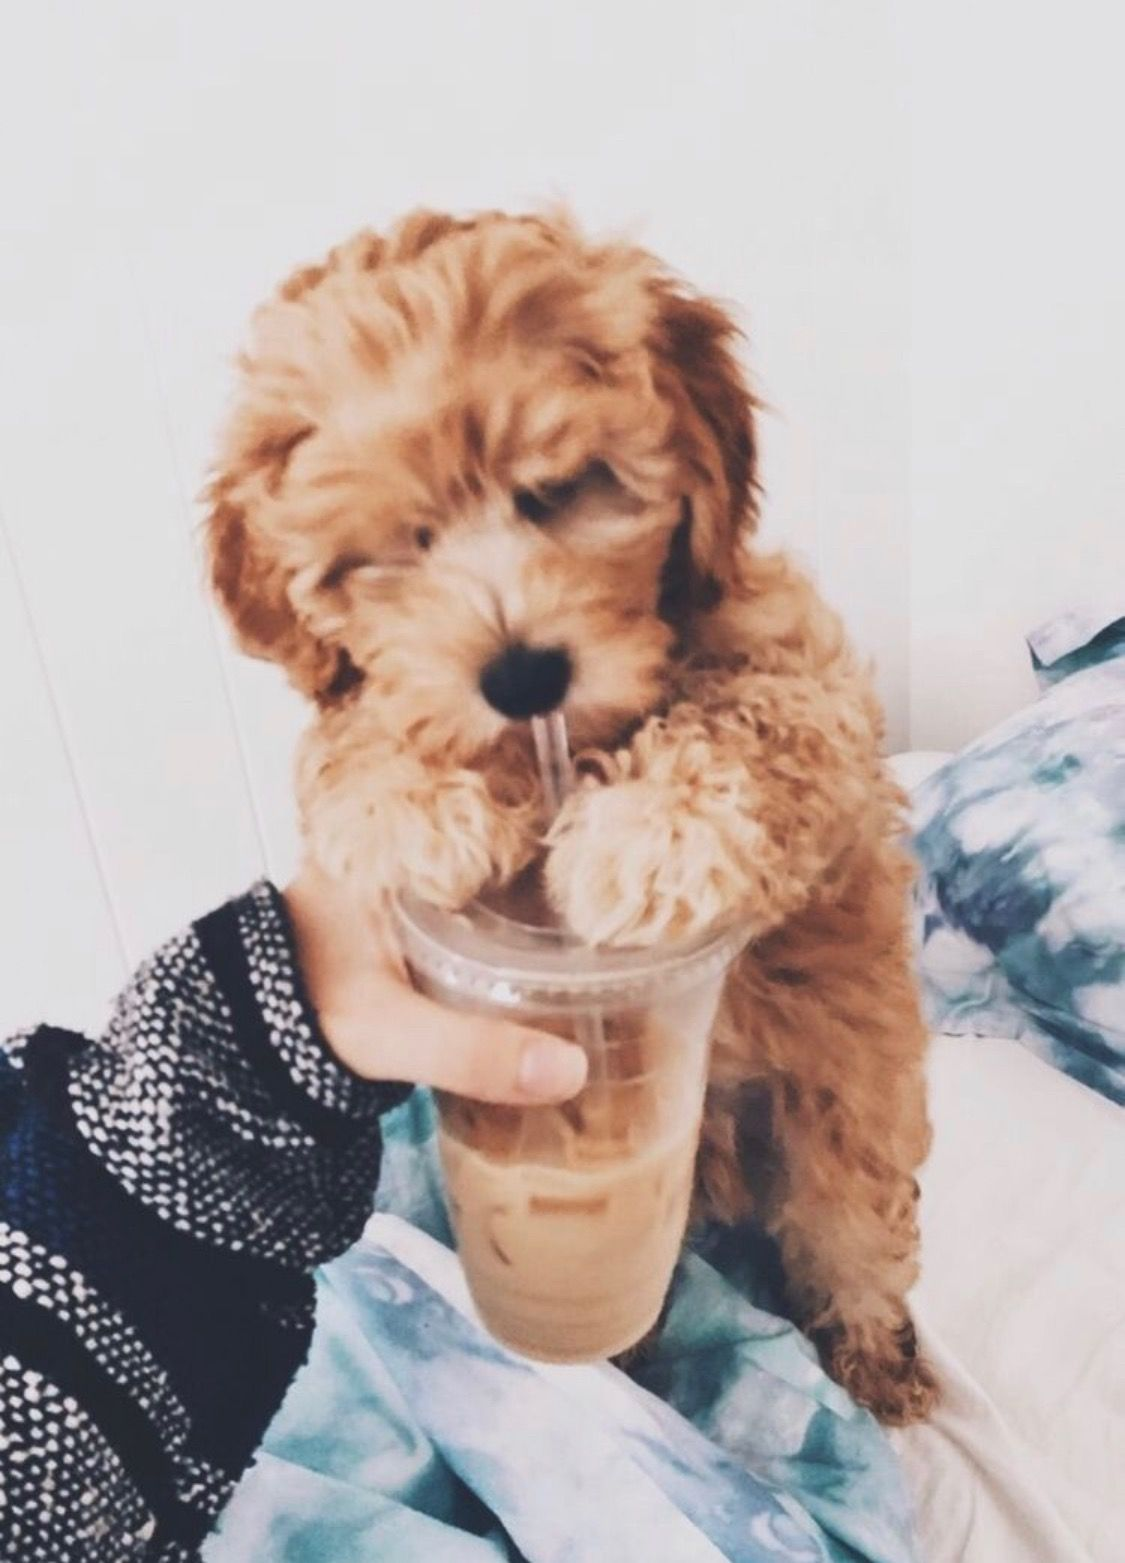 Vsco Trendy Vsco Cute Dogs And Puppies Animal Tumblr Cute